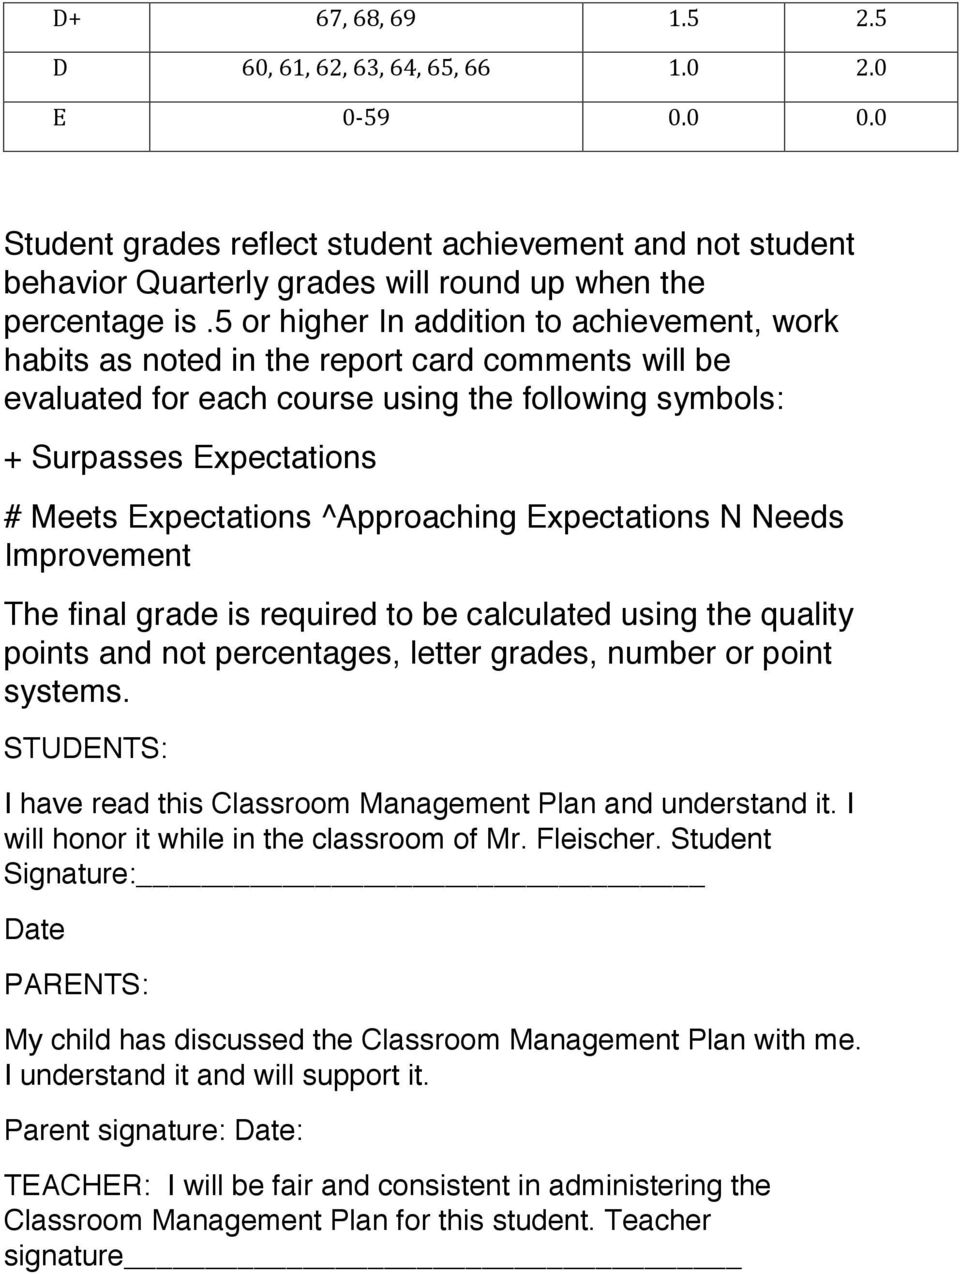 ^Approaching Expectations N Needs Improvement The final grade is required to be calculated using the quality points and not percentages, letter grades, number or point systems.